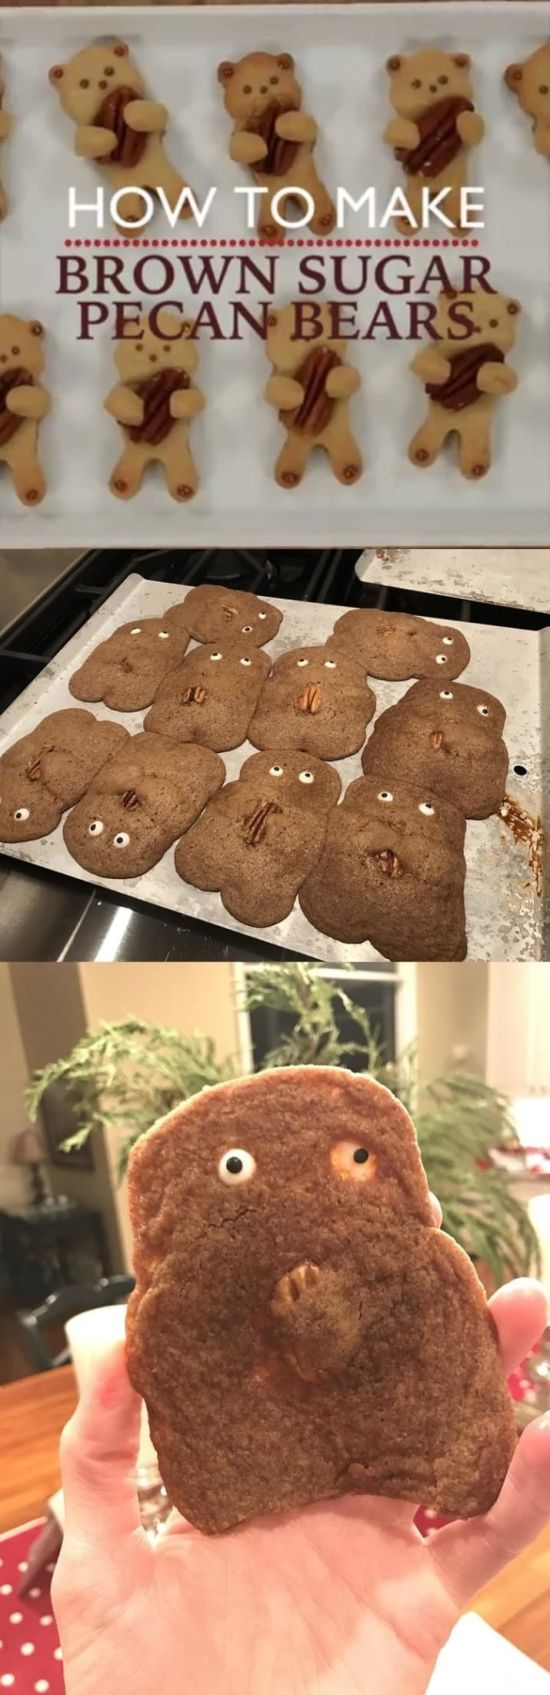 People Who Can't Cook (16 pics)